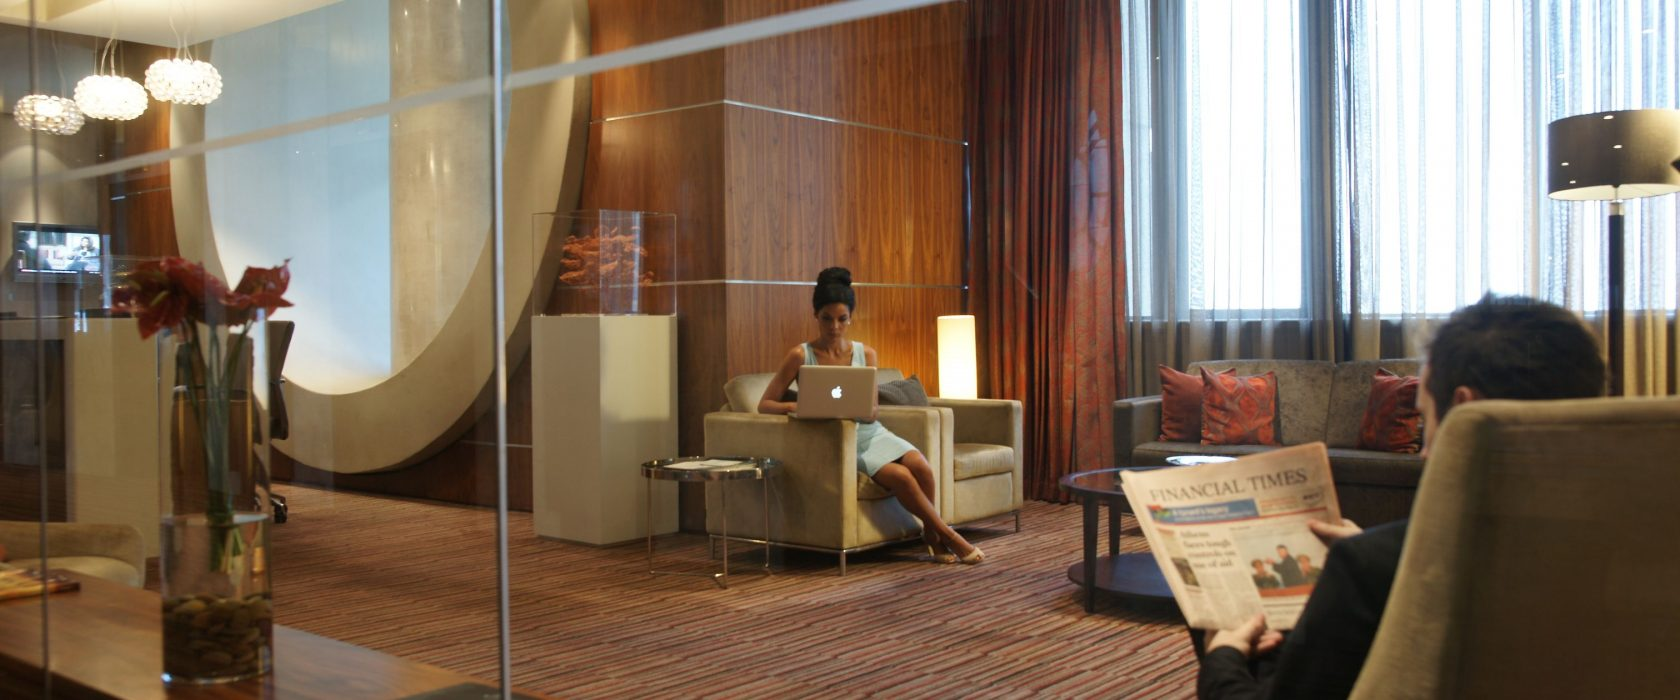 Woman And Man In The Business Suite Lounge